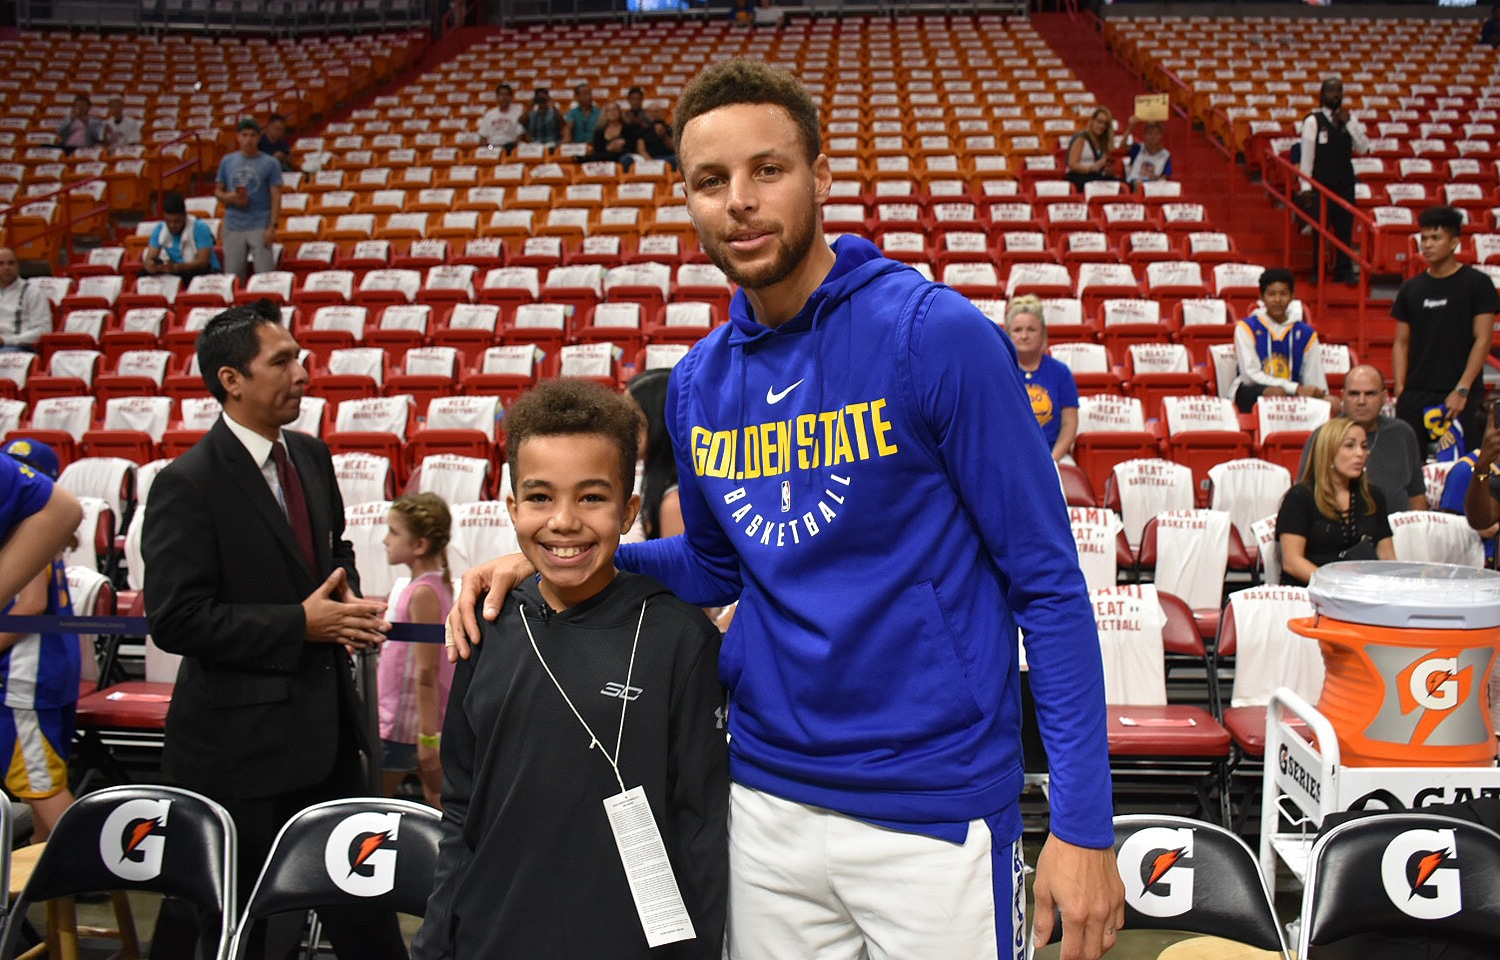 Social media gone right stephen curry meets young warriors fan a sixth grader from hollywood florida malichi attended the warriors heat game m4hsunfo